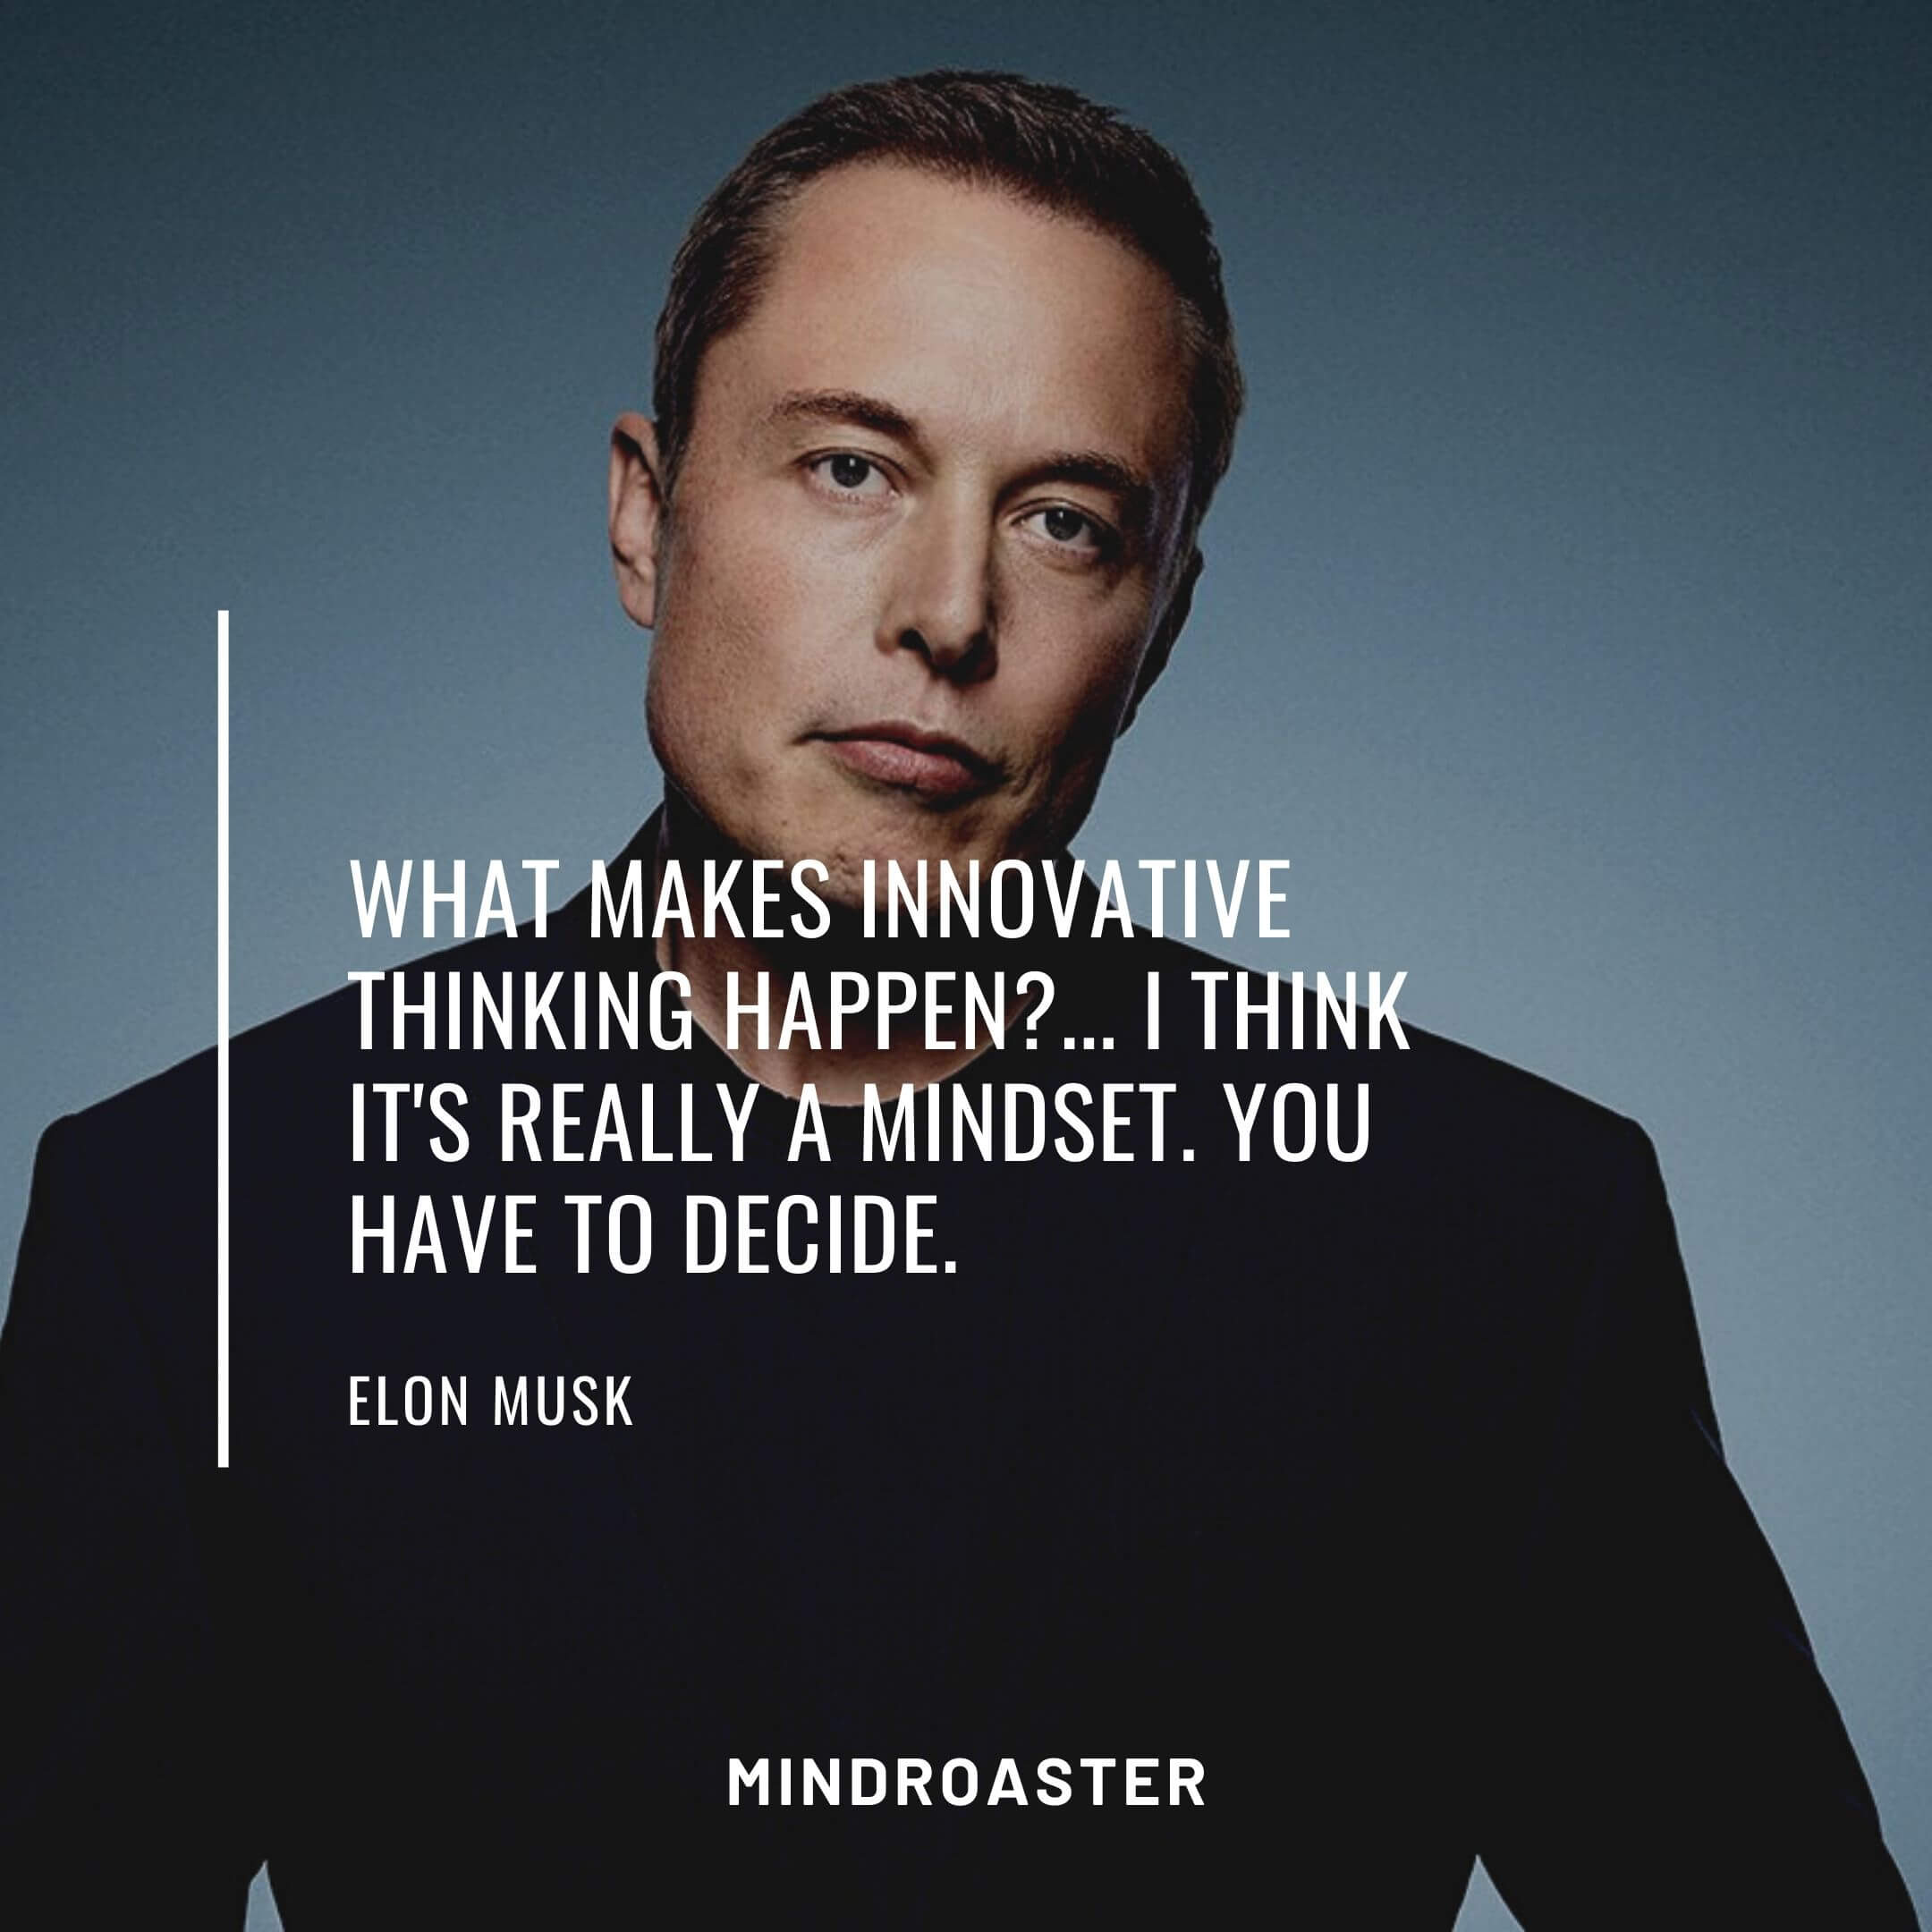 Elon Musk Quotes about Sucess